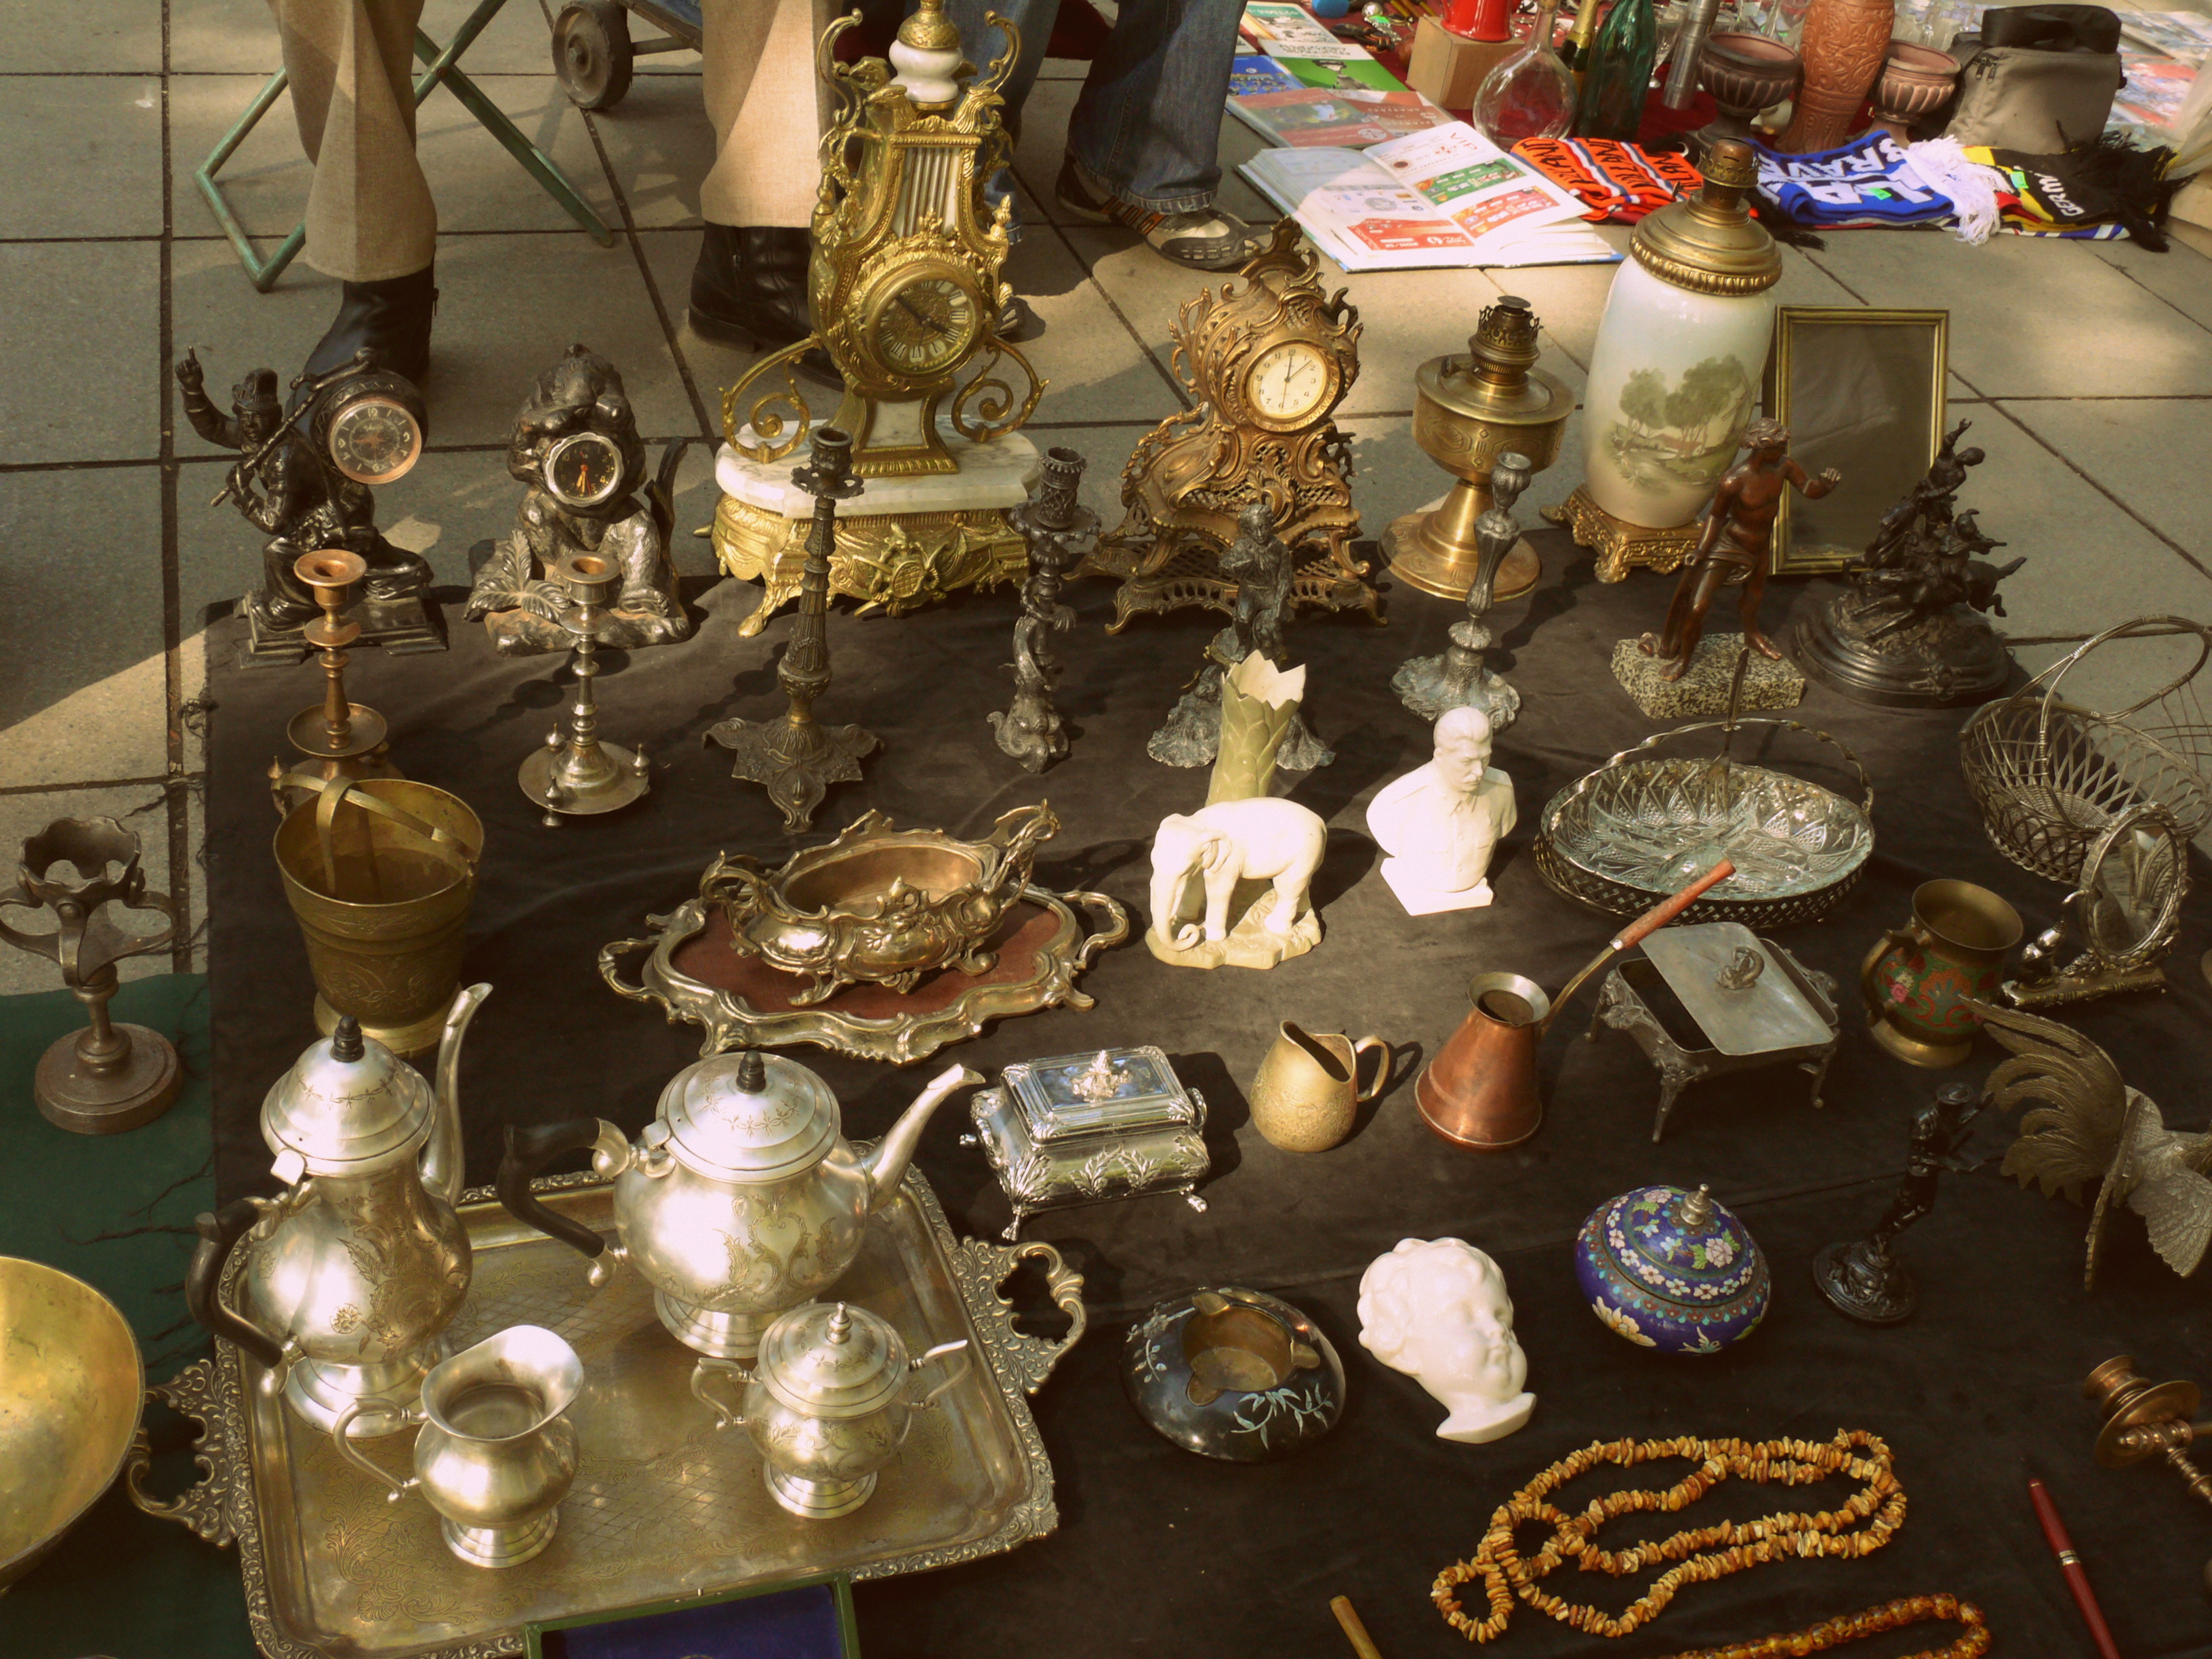 Georgia Tbilisi Flea Market Stock Photos Georgia Tbilisi: Tbilisi Flea Market